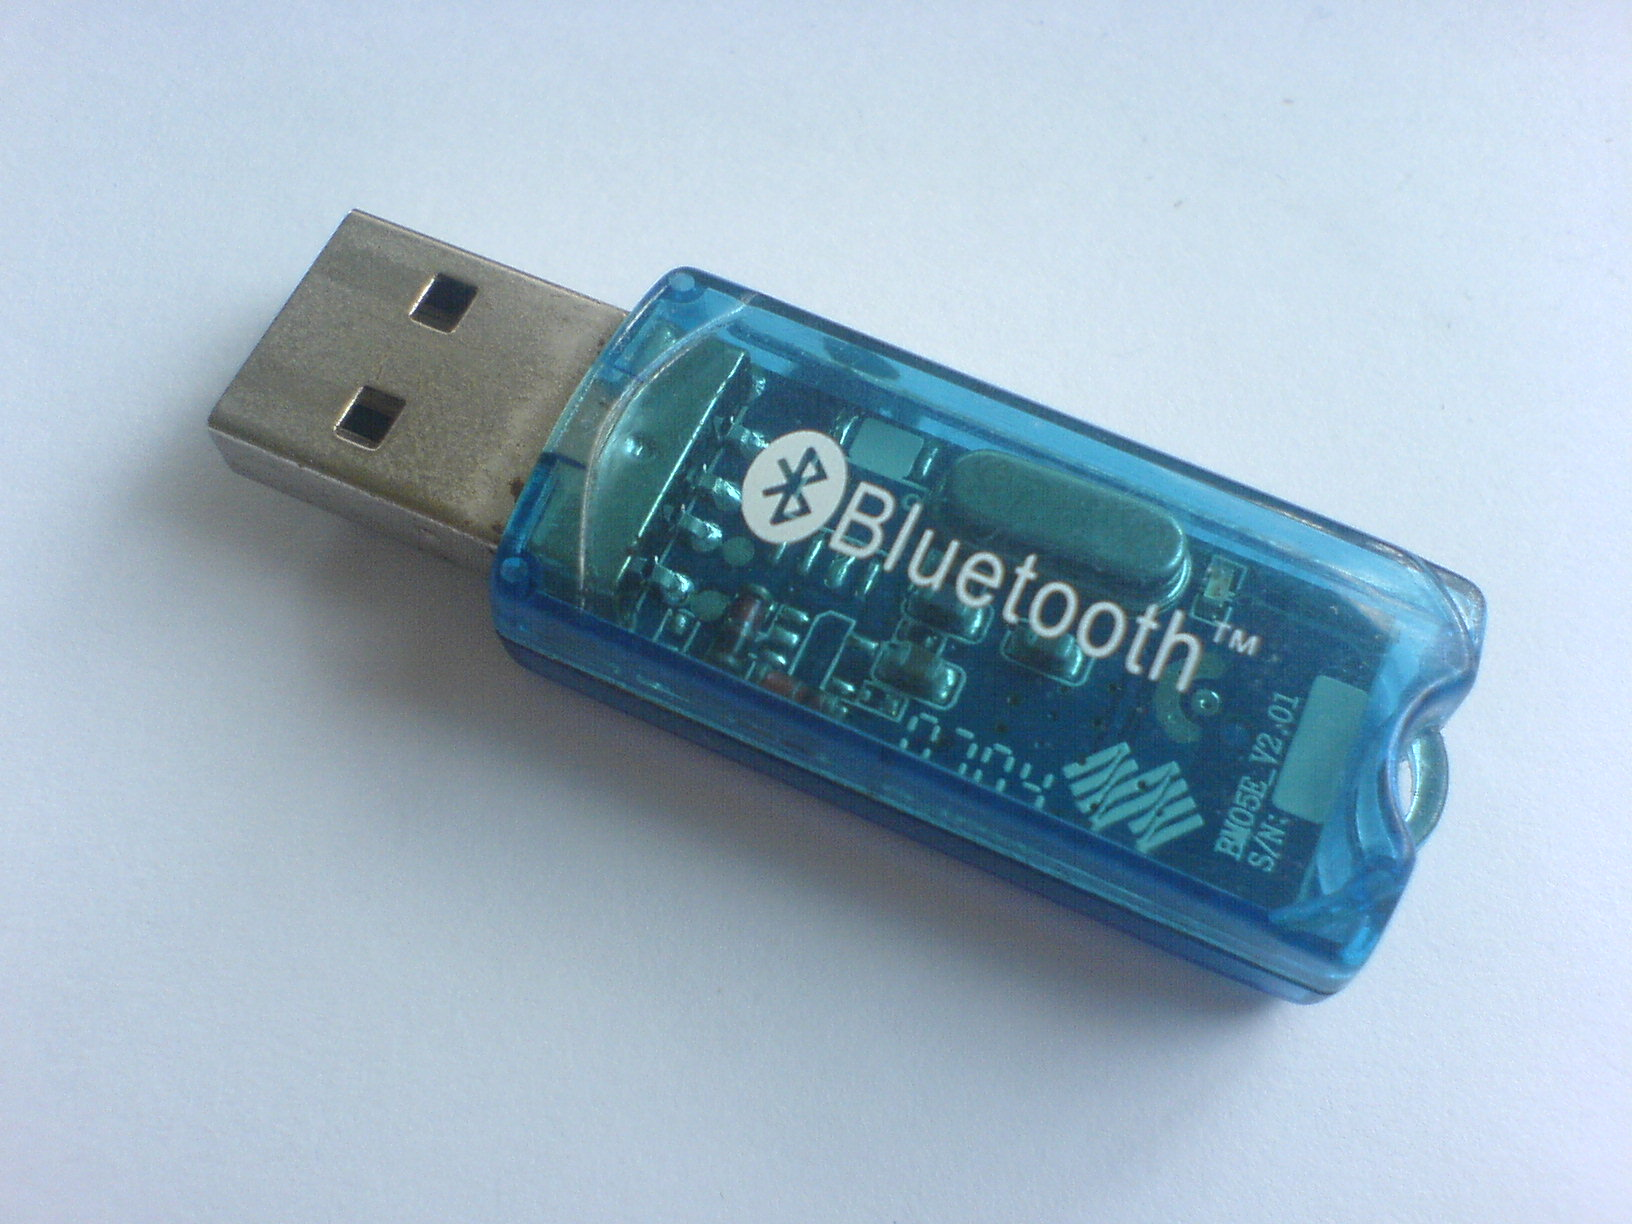 Bluetooth Usb Dongle Peripheral Device Driver